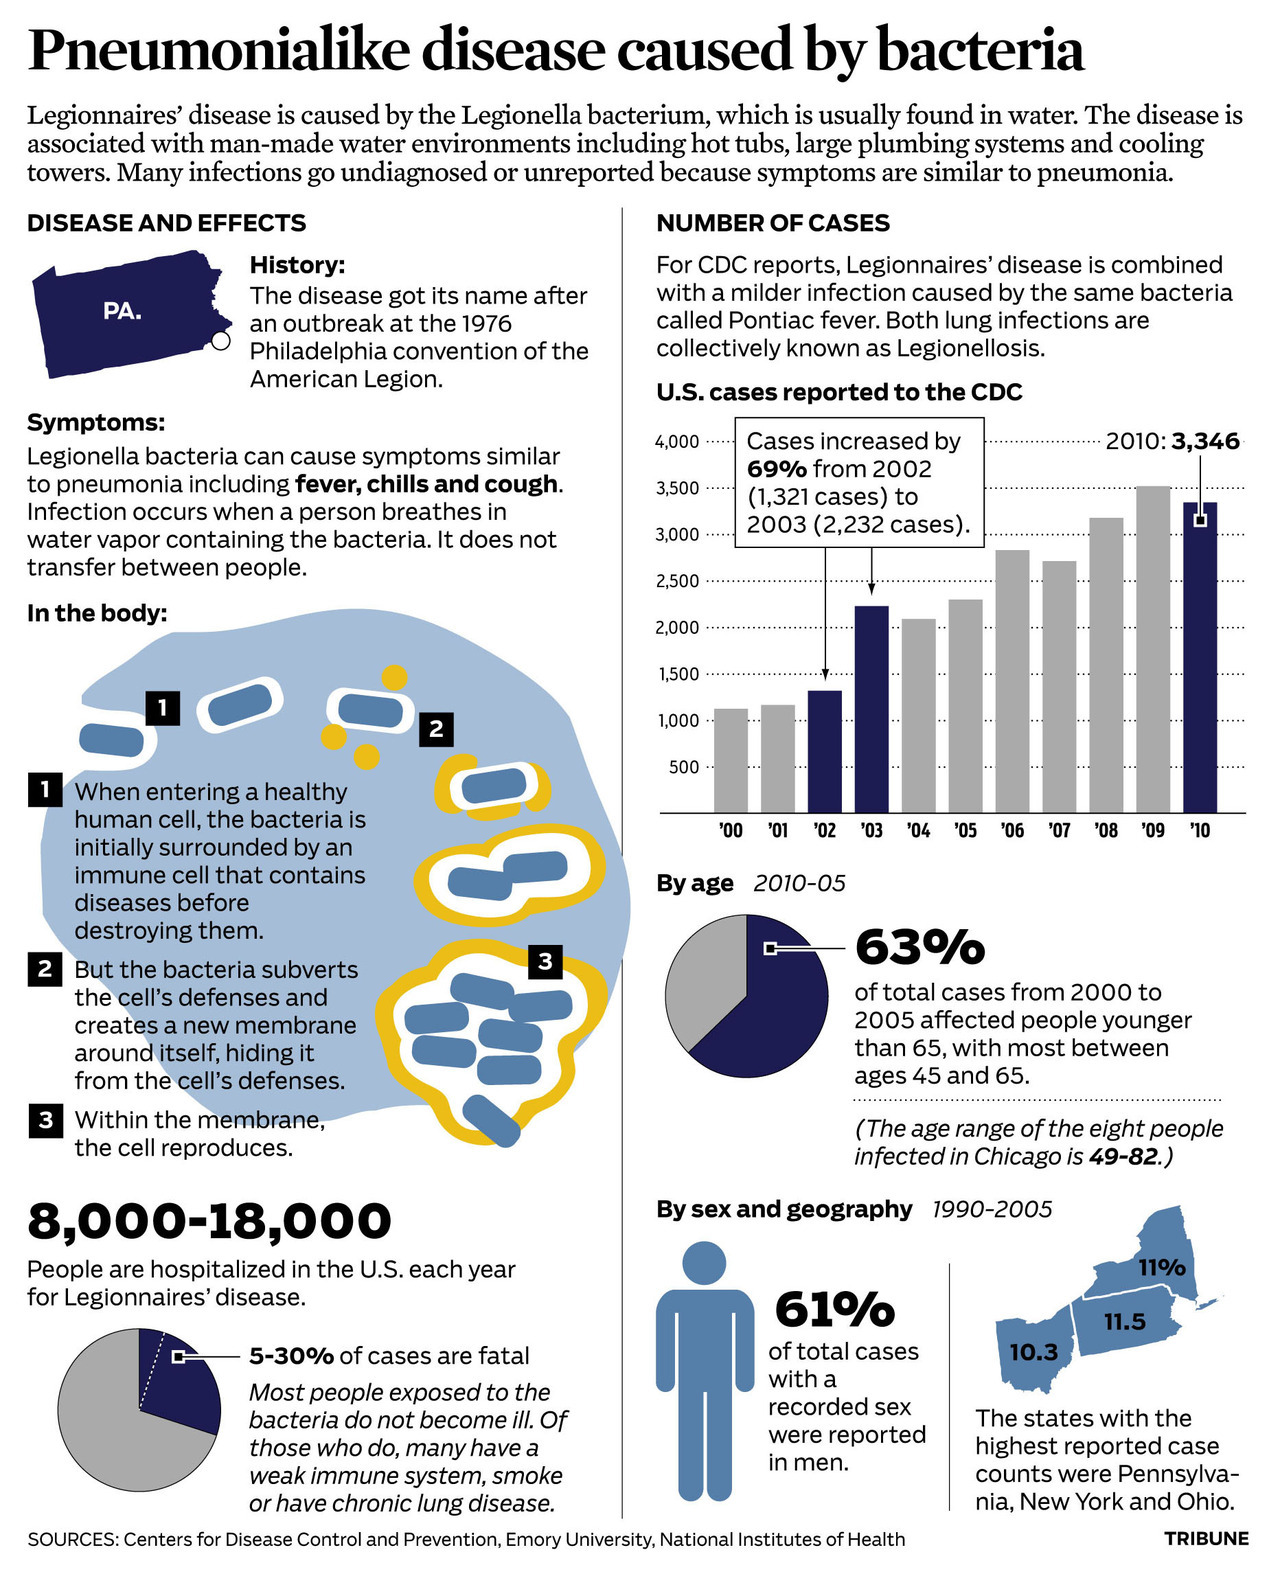 Legionnaires' disease: Infographic on the illness that hit a downtown Chicago hotel.